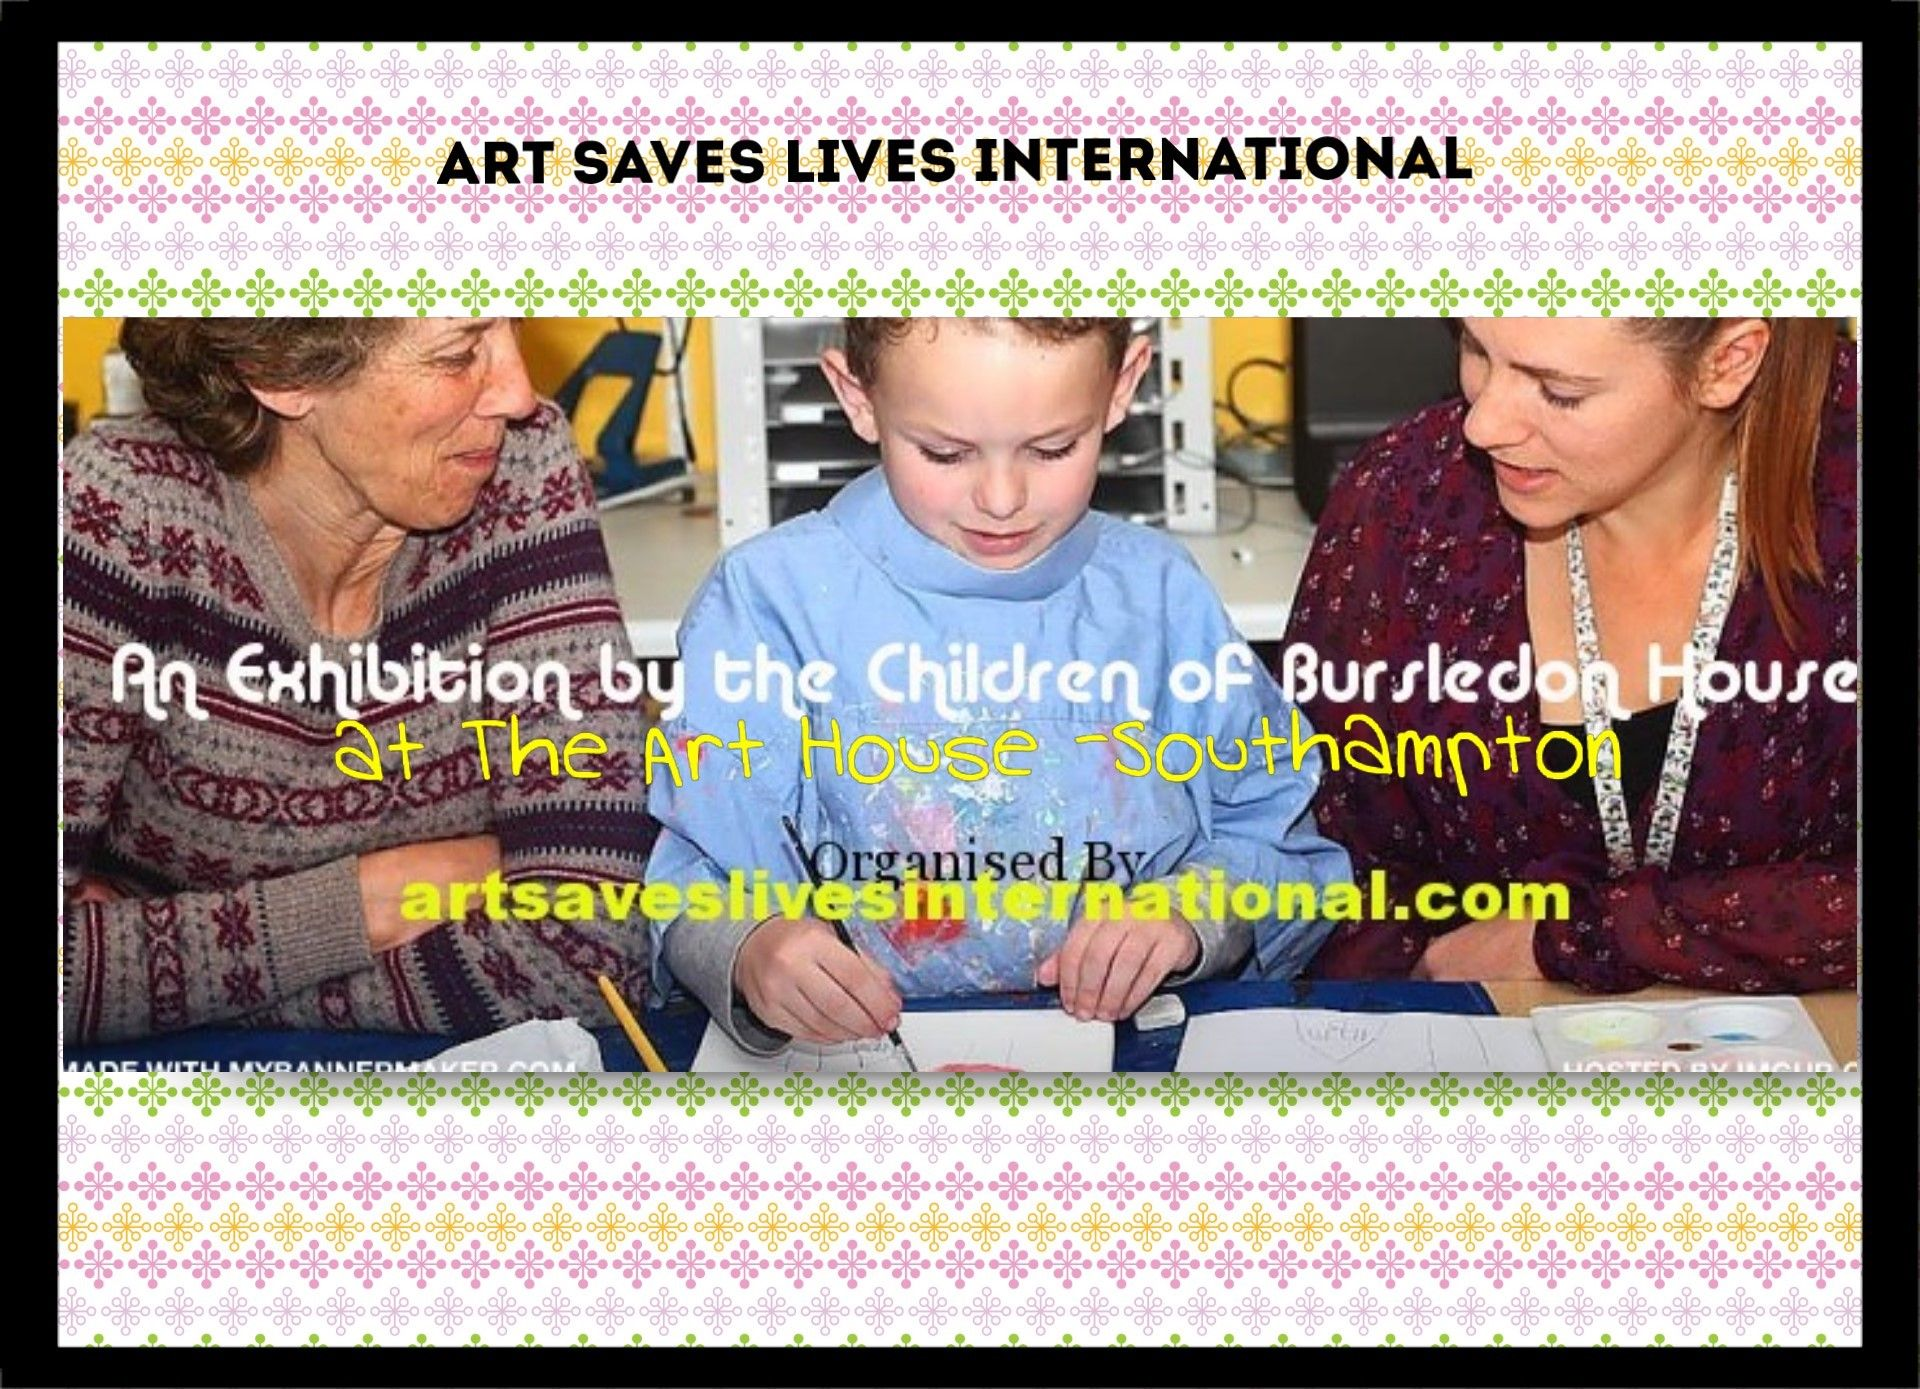 Art Saves Lives International is a non-profit global arts organization dedicated to providing free inspirational and inclusive arts projects to marginalized artists. We offer our thriving community of artists a plethora of multi-media platforms, cultural odysseys and innovative opportunities to unleash their creativity, gain global exposure and transform their lives.